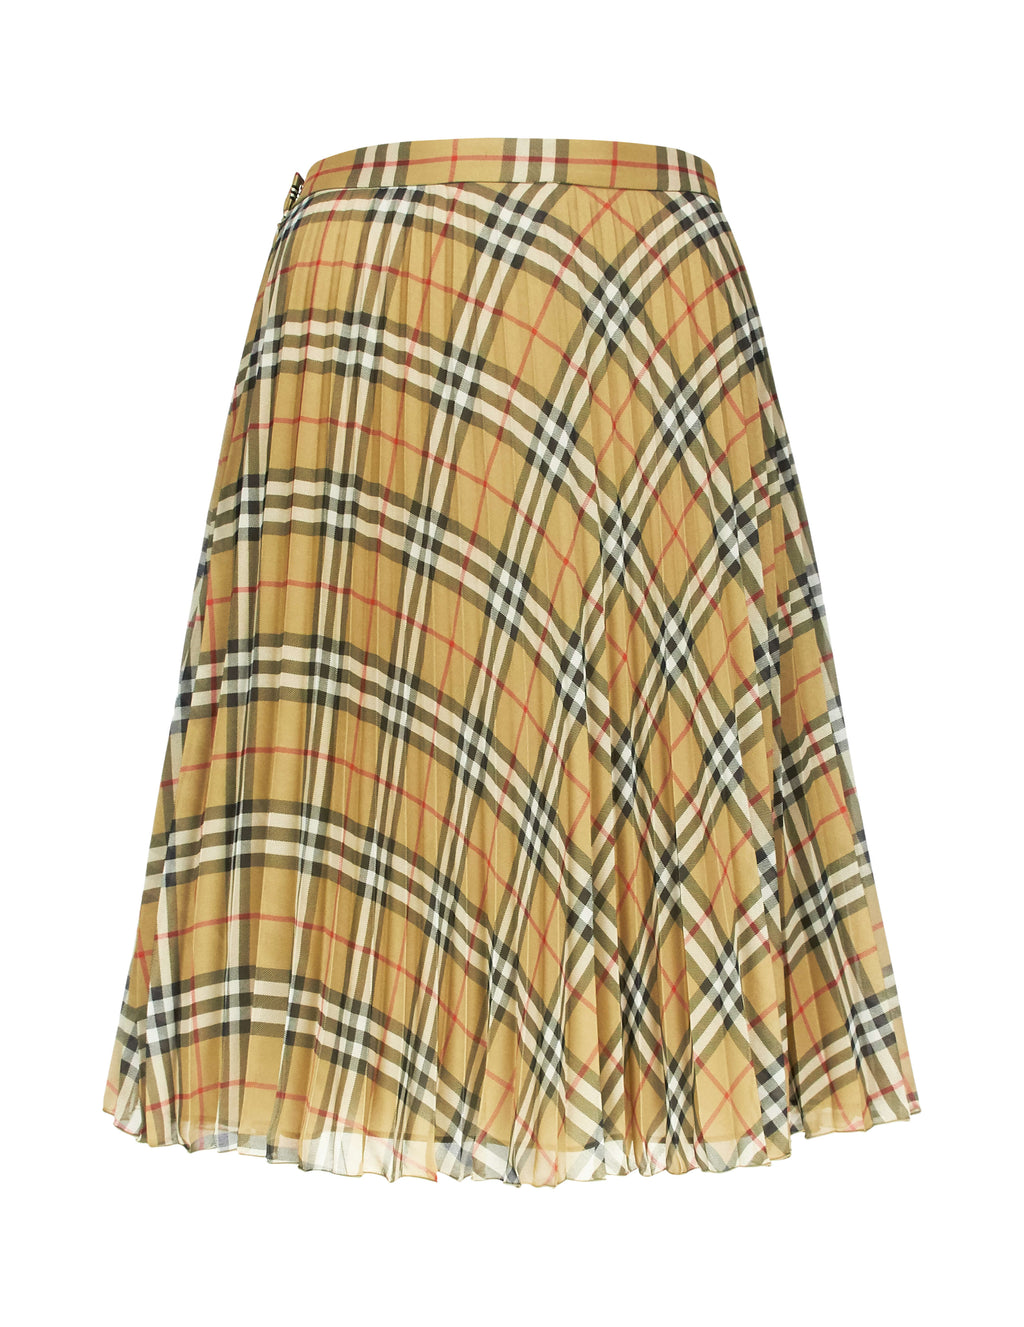 Burberry Women's Giulio Fashion Beige Vintage Check A-Line Skirt 8009059A7028